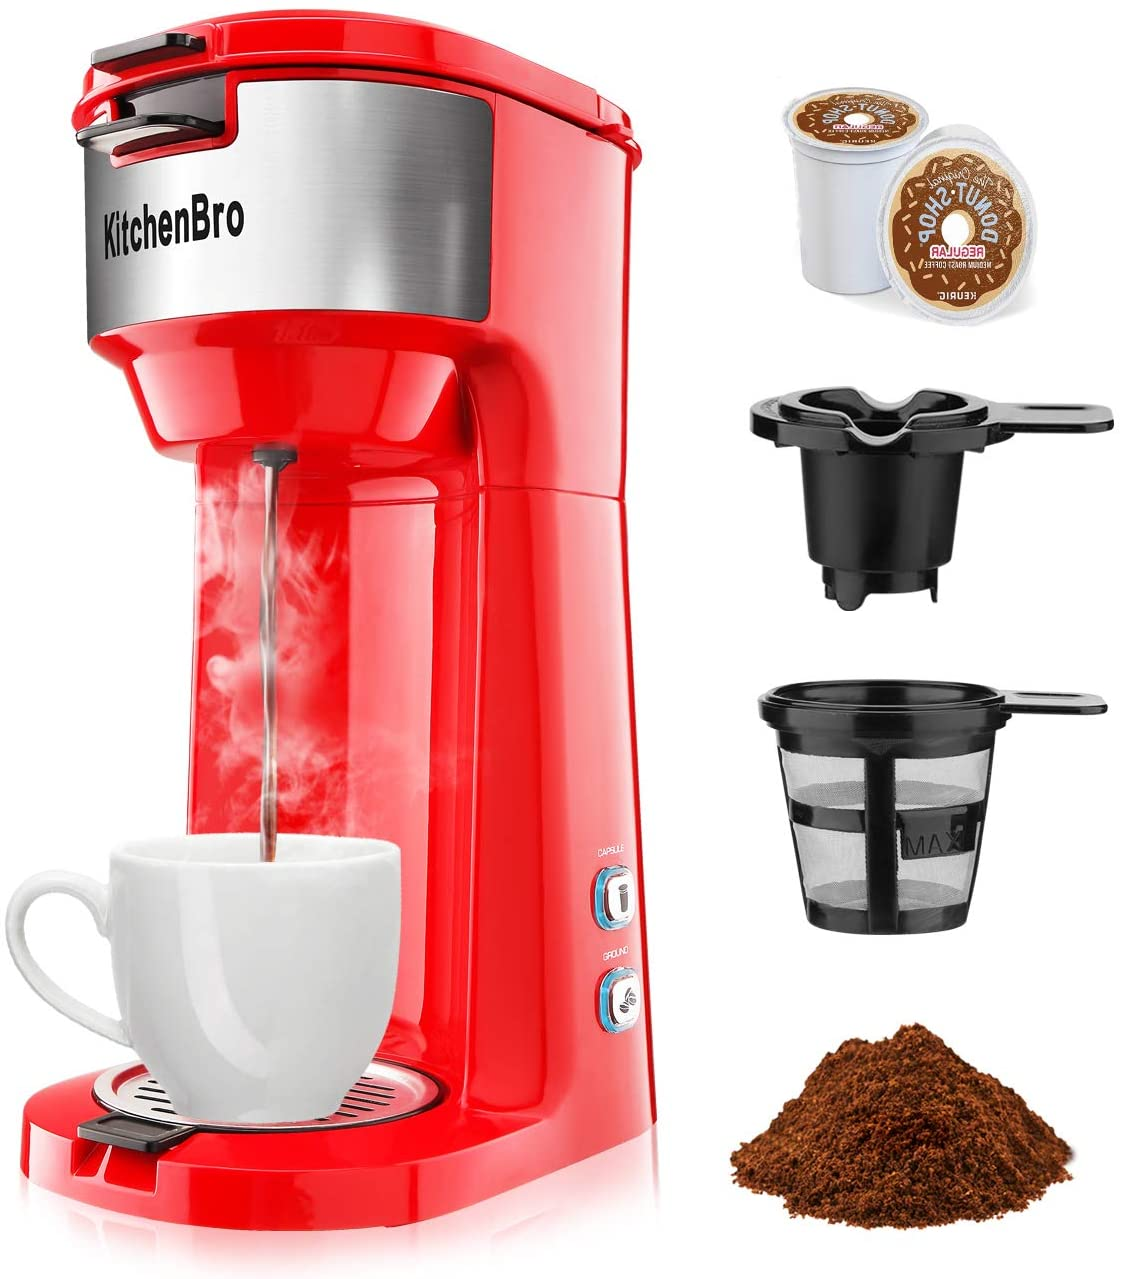 KitchenBro Single Serve Coffee Maker for K Cup Coffee Pod & Ground Coffee. Portable Coffee Maker Brewer for Travel, Office. Small Single Cup Coffee makers Can Fast Brew in 3 Mins. The One Cup Coffee Maker with Strength Control, Self Cleaning and Auto Shut Off.Red